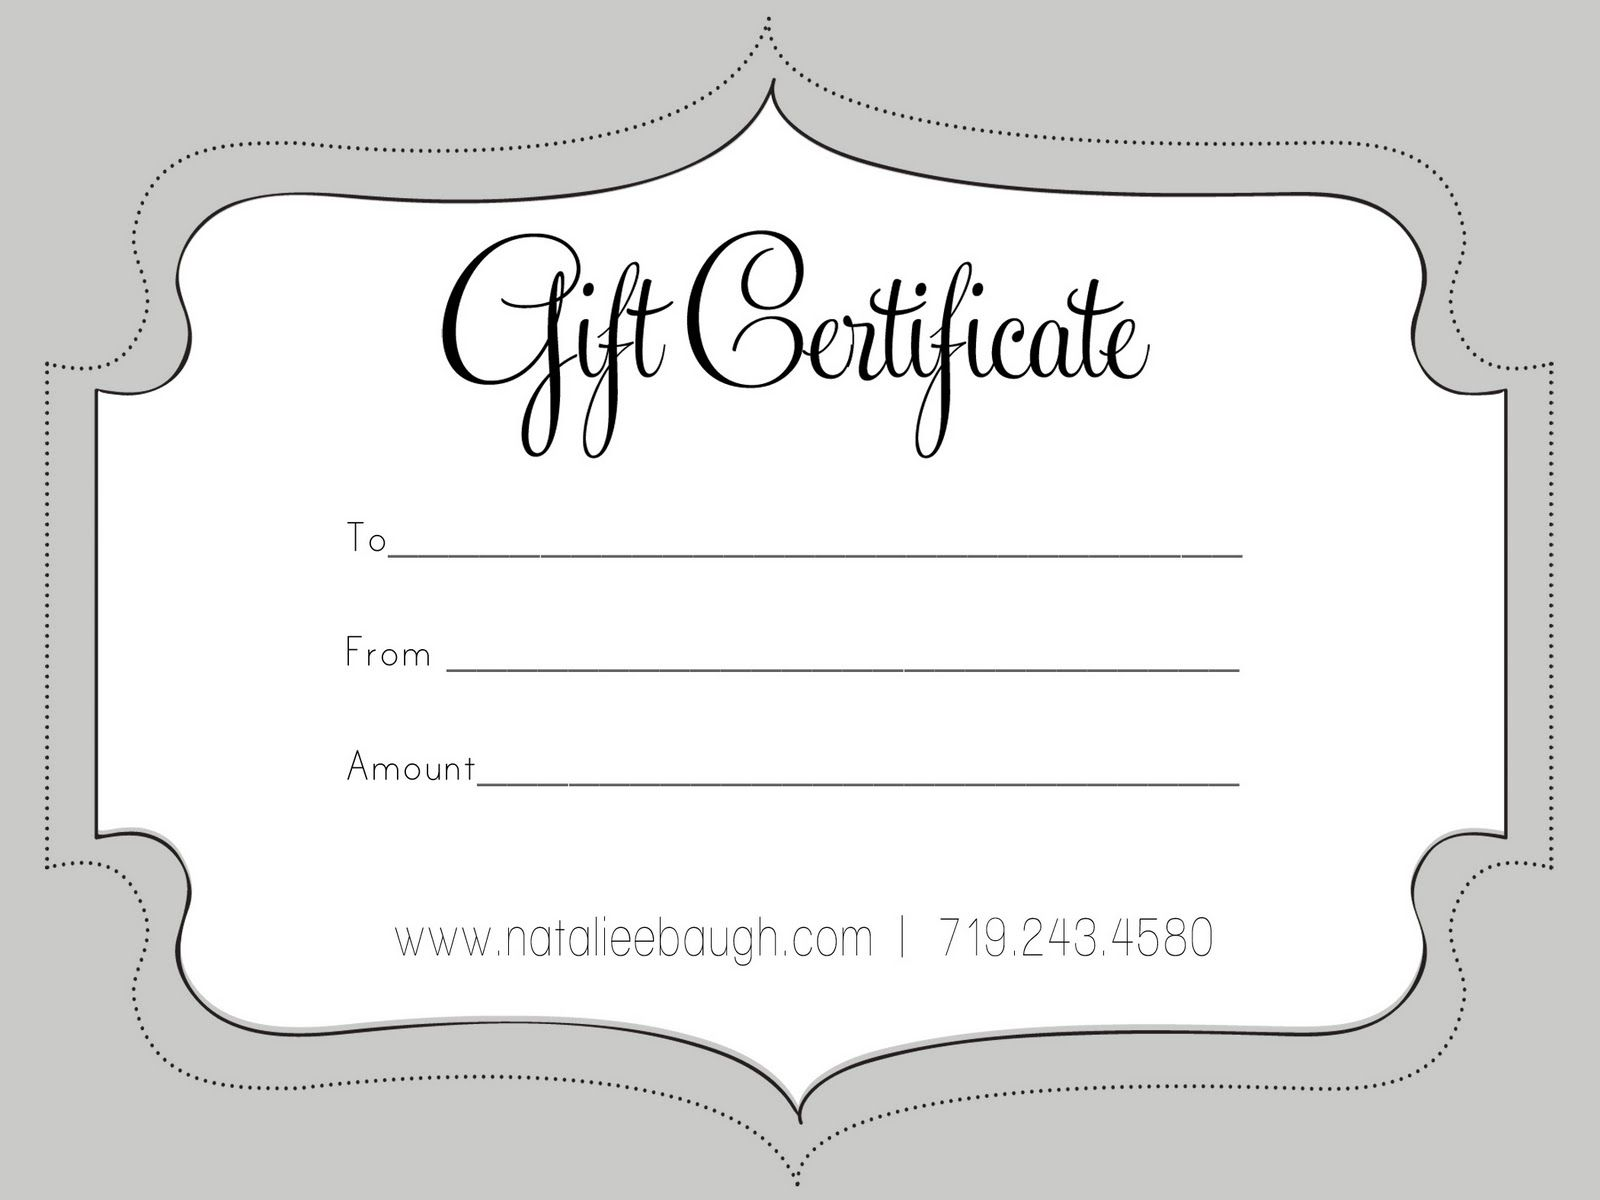 A cute looking gift certificate free gift certificate